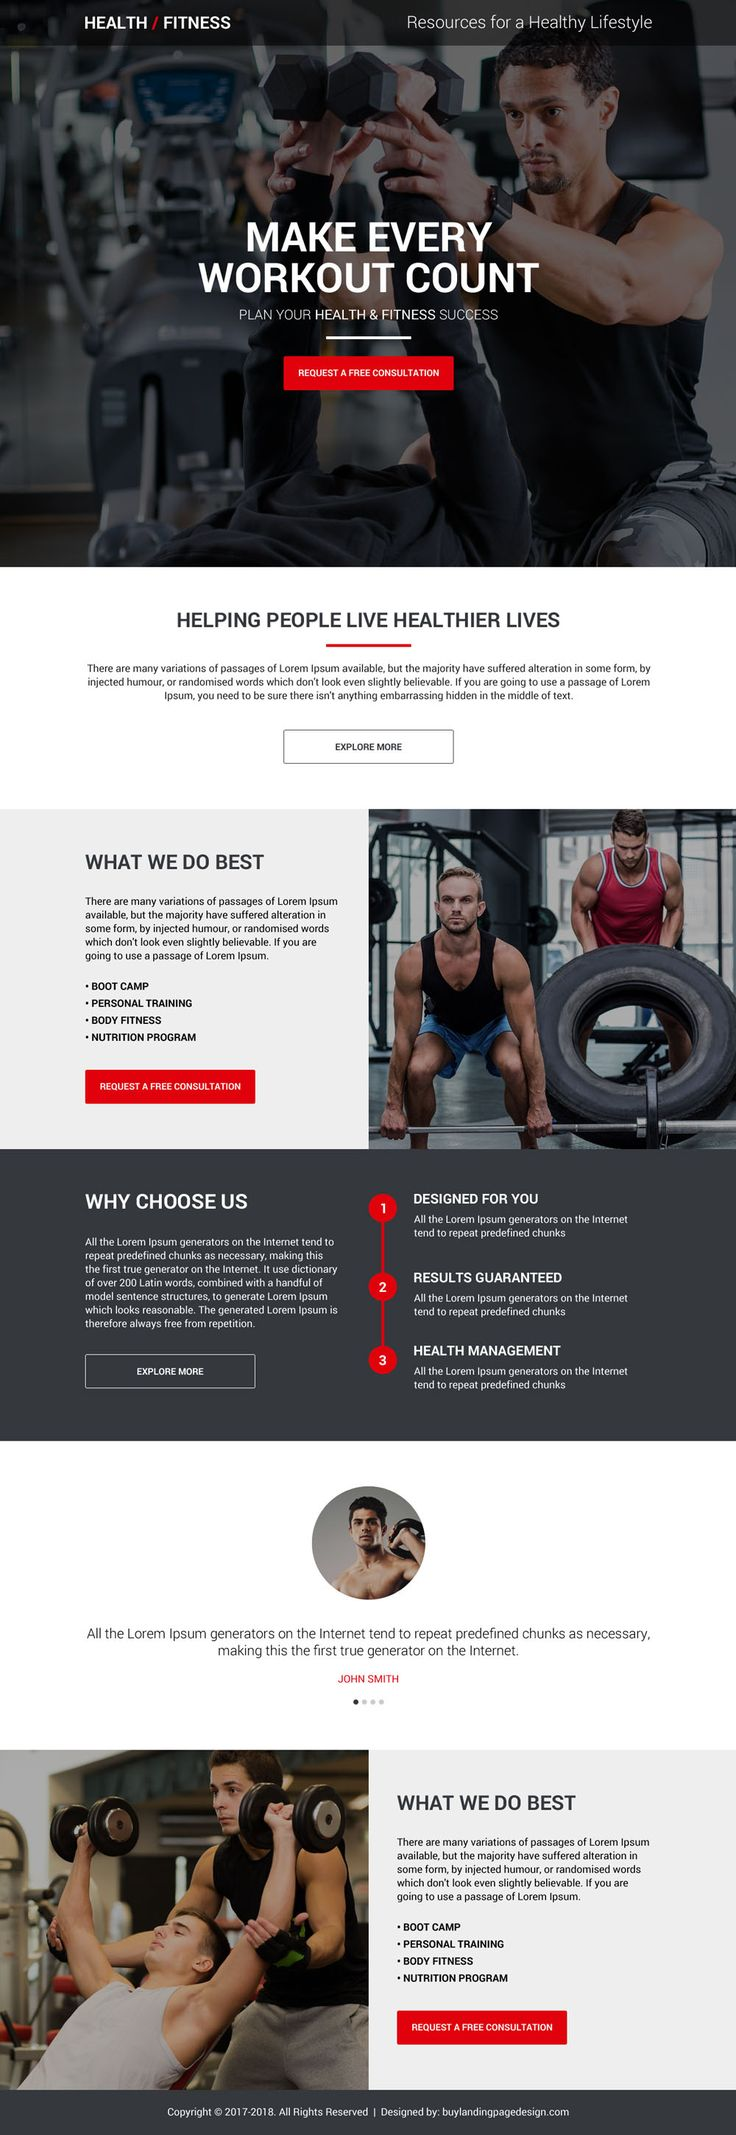 Health And Fitness Free Consultation Lead Capturing Landing Page Fitness Websites Health Fitness Health